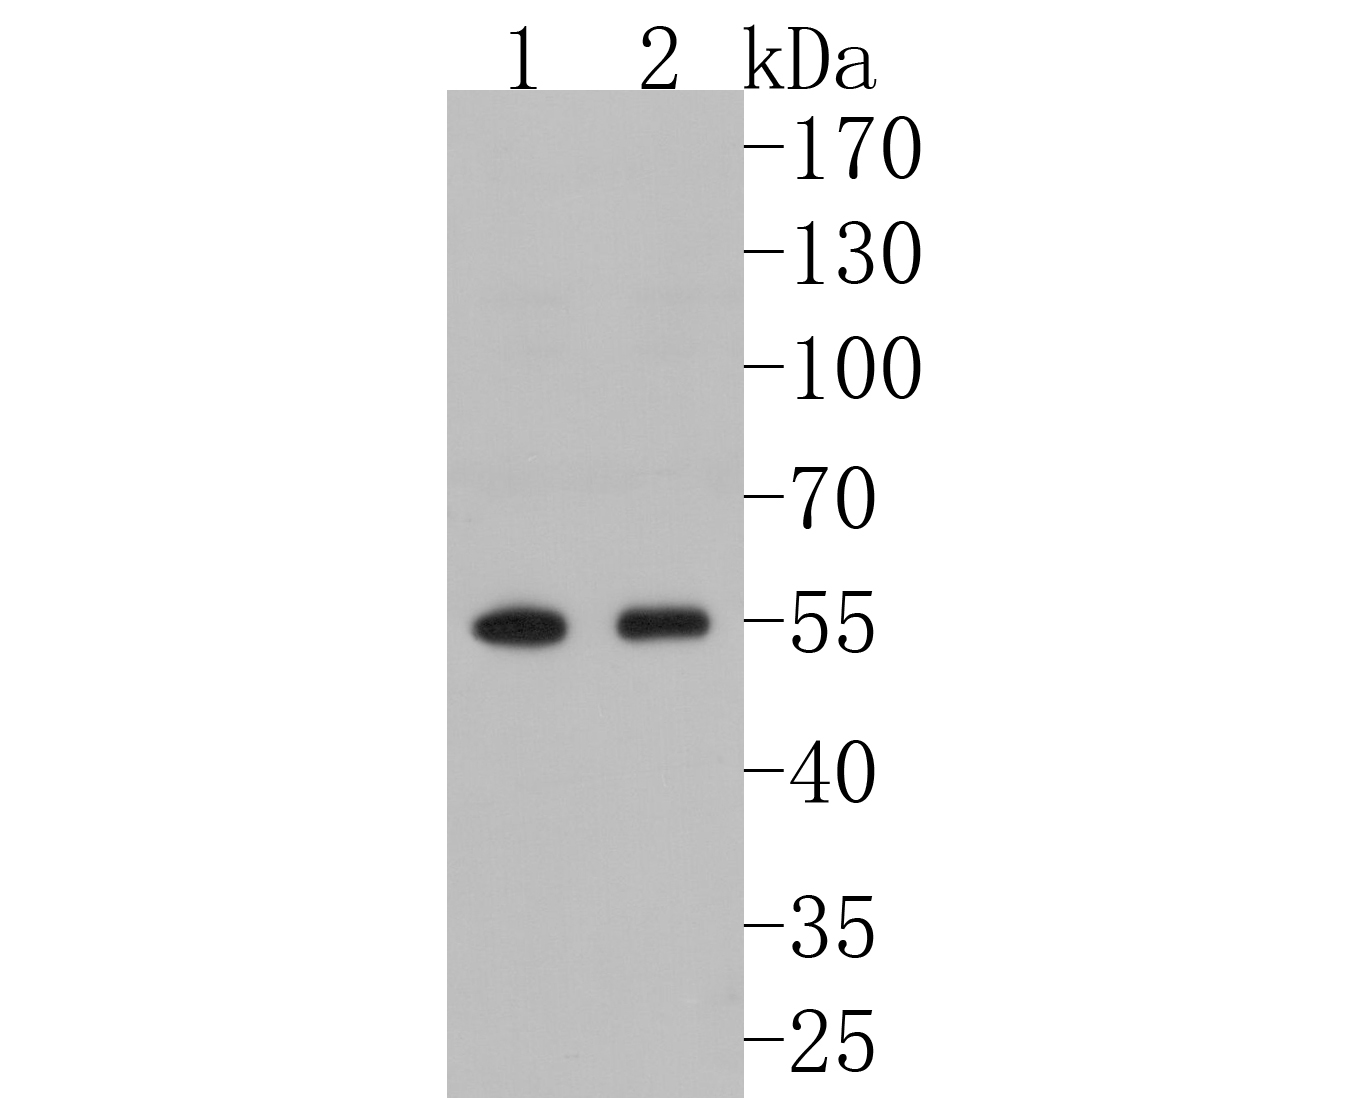 Western blot analysis of FKBP51 on different lysates. Proteins were transferred to a PVDF membrane and blocked with 5% BSA in PBS for 1 hour at room temperature. The primary antibody (ET7107-64, 1/500) was used in 5% BSA at room temperature for 2 hours. Goat Anti-Rabbit IgG - HRP Secondary Antibody (HA1001) at 1:5,000 dilution was used for 1 hour at room temperature.<br /> Positive control: <br /> Lane 1: Daudi cell lysate<br /> Lane 2: Hela cell lysate